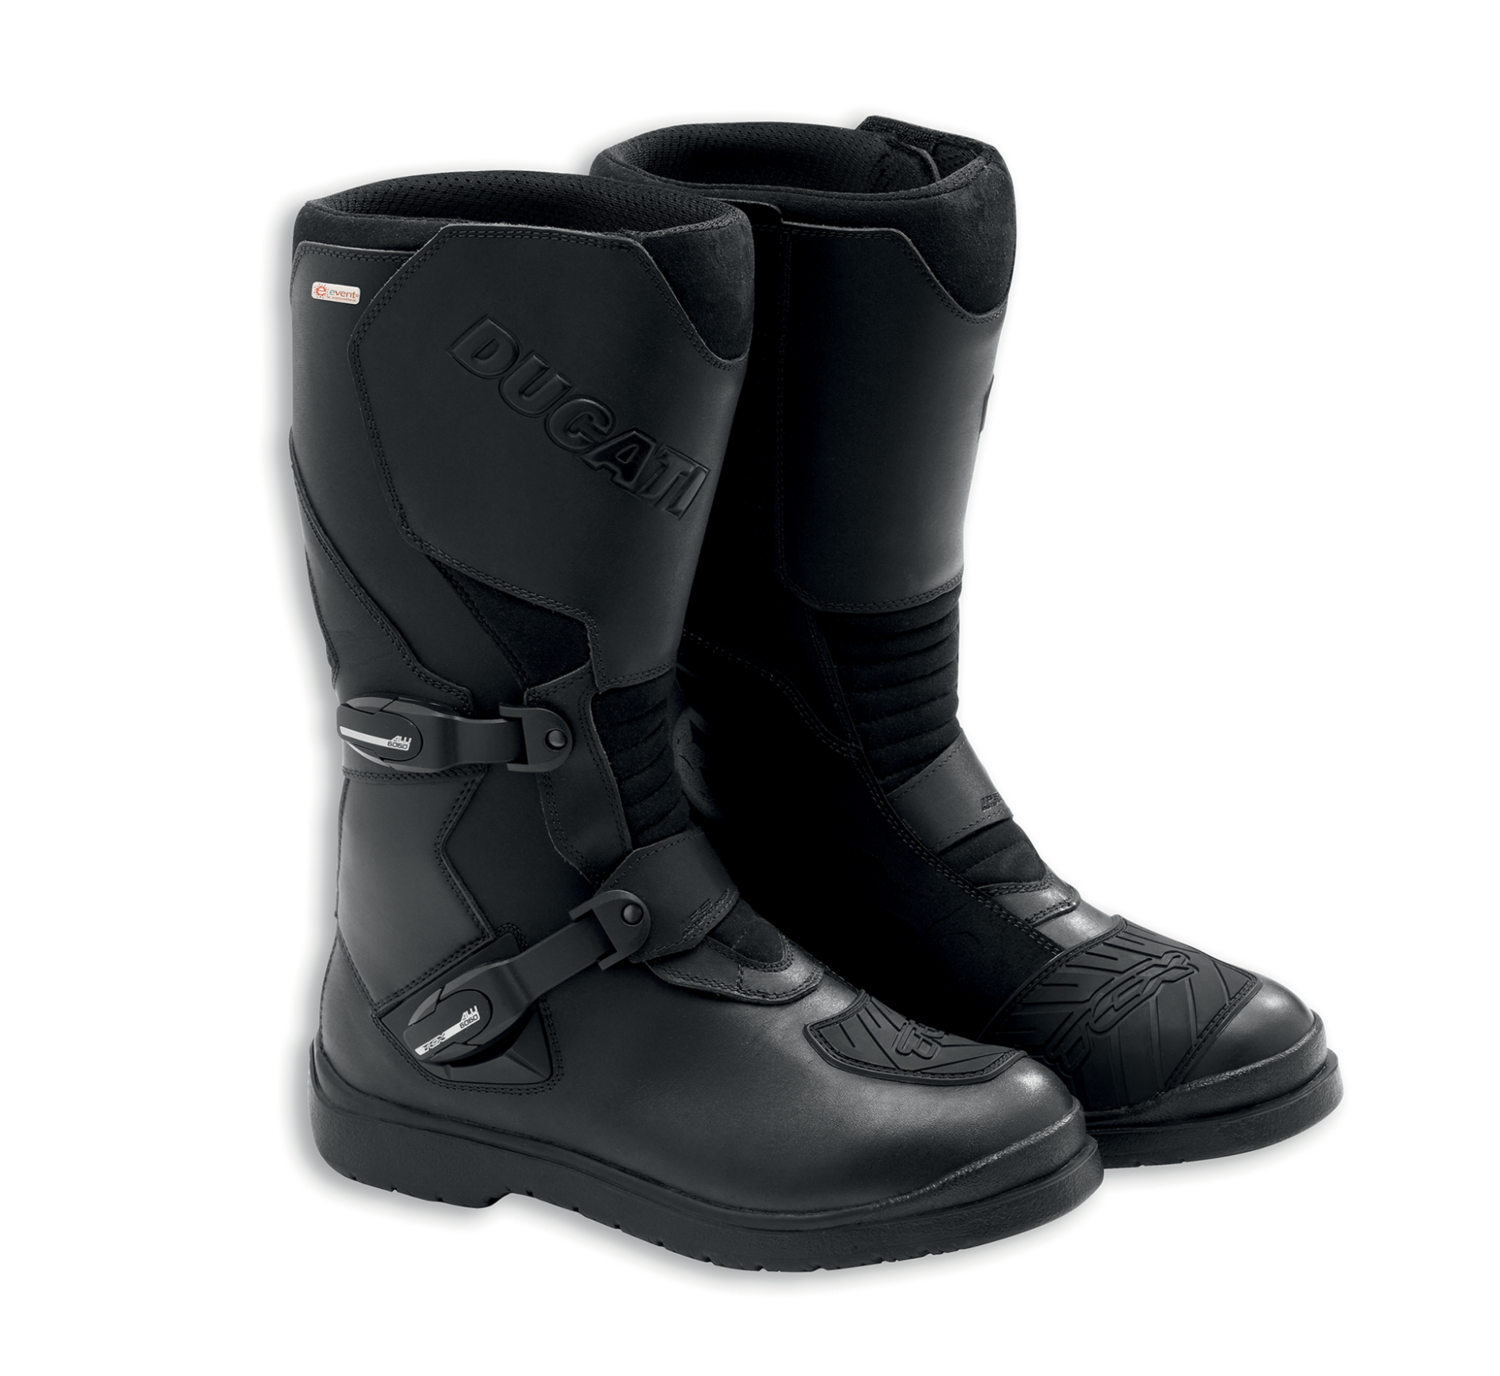 Touring-Adventure Boots All Terrain